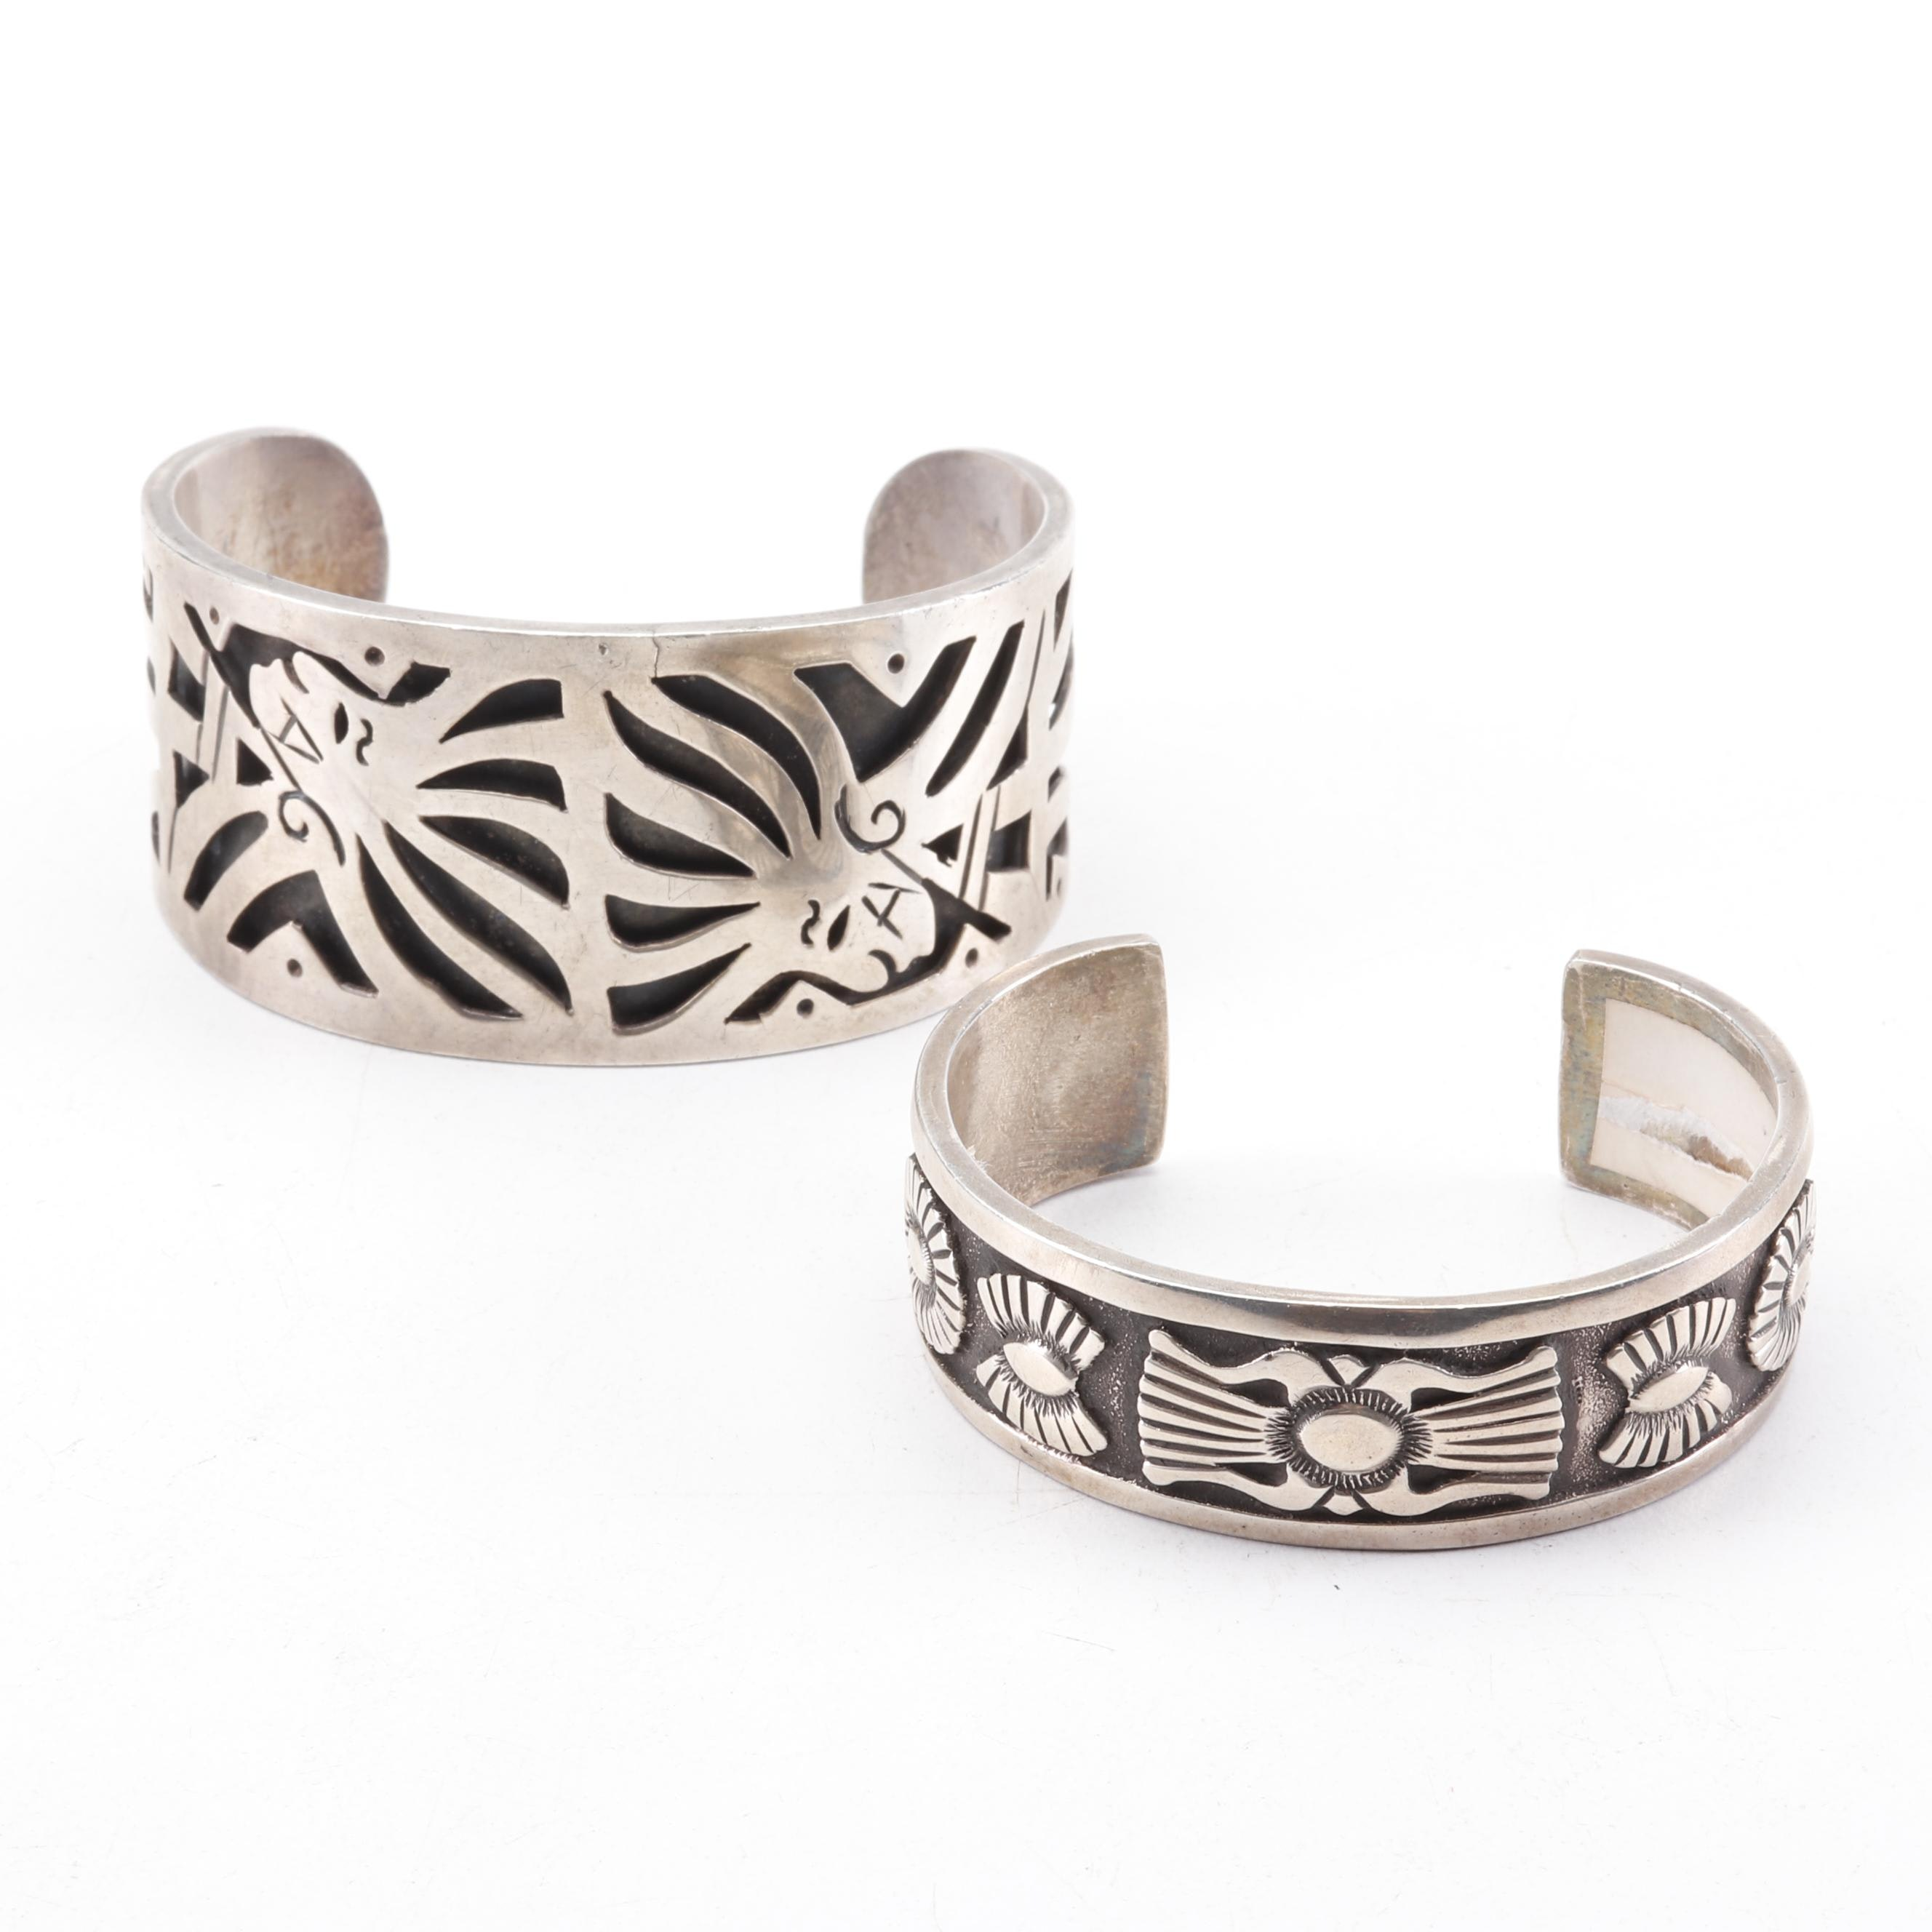 Rick Martinez Sterling Silver Floral Cuff with Sterling Relief Cuff